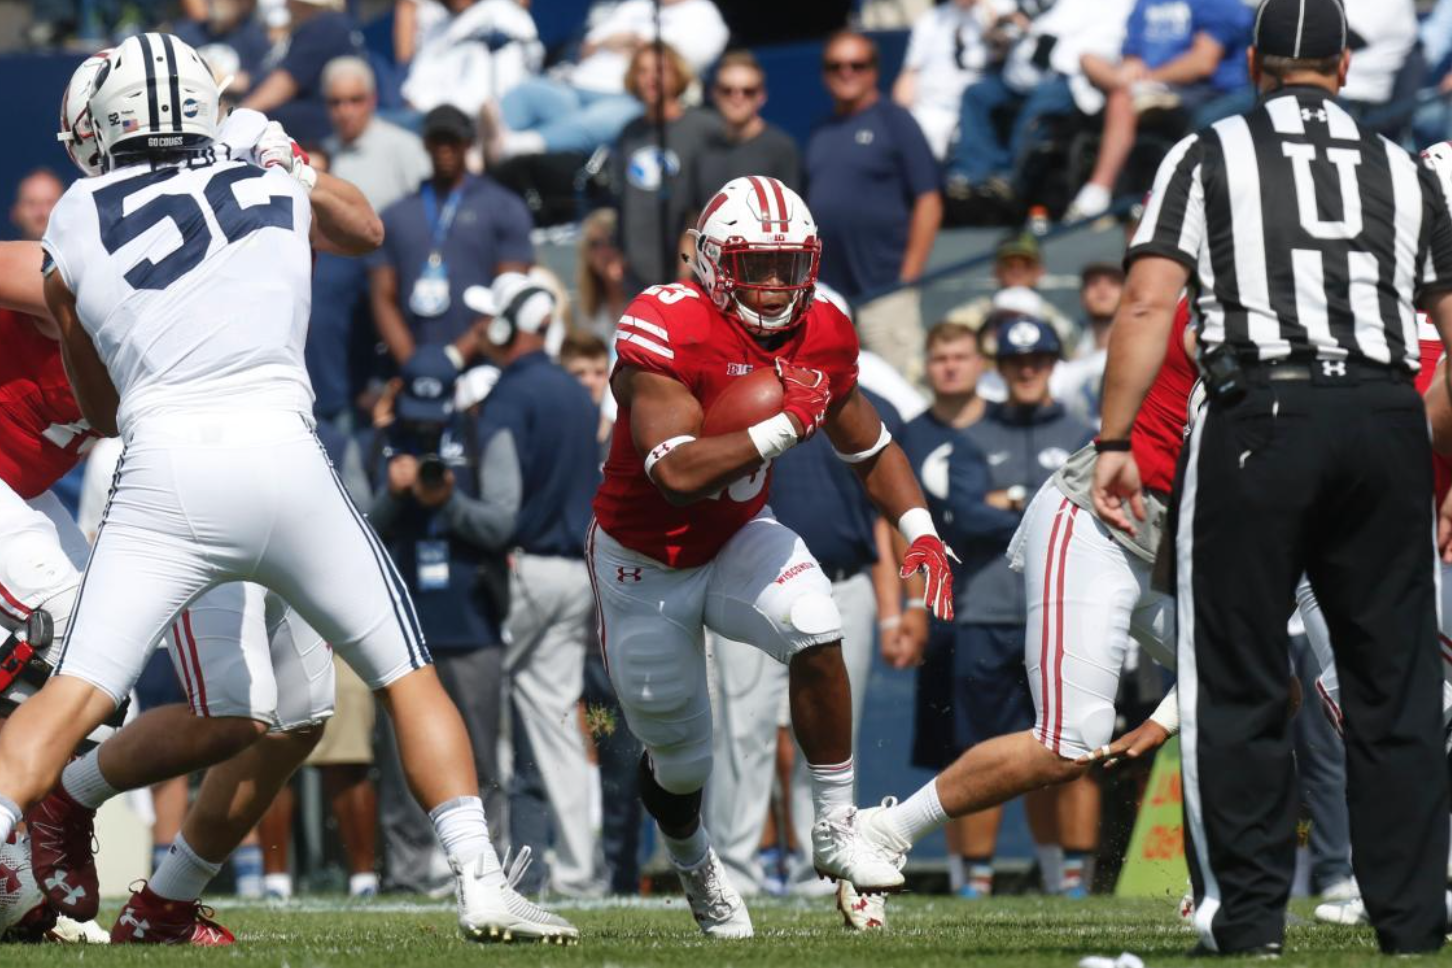 Three things we learned about the Badger offense